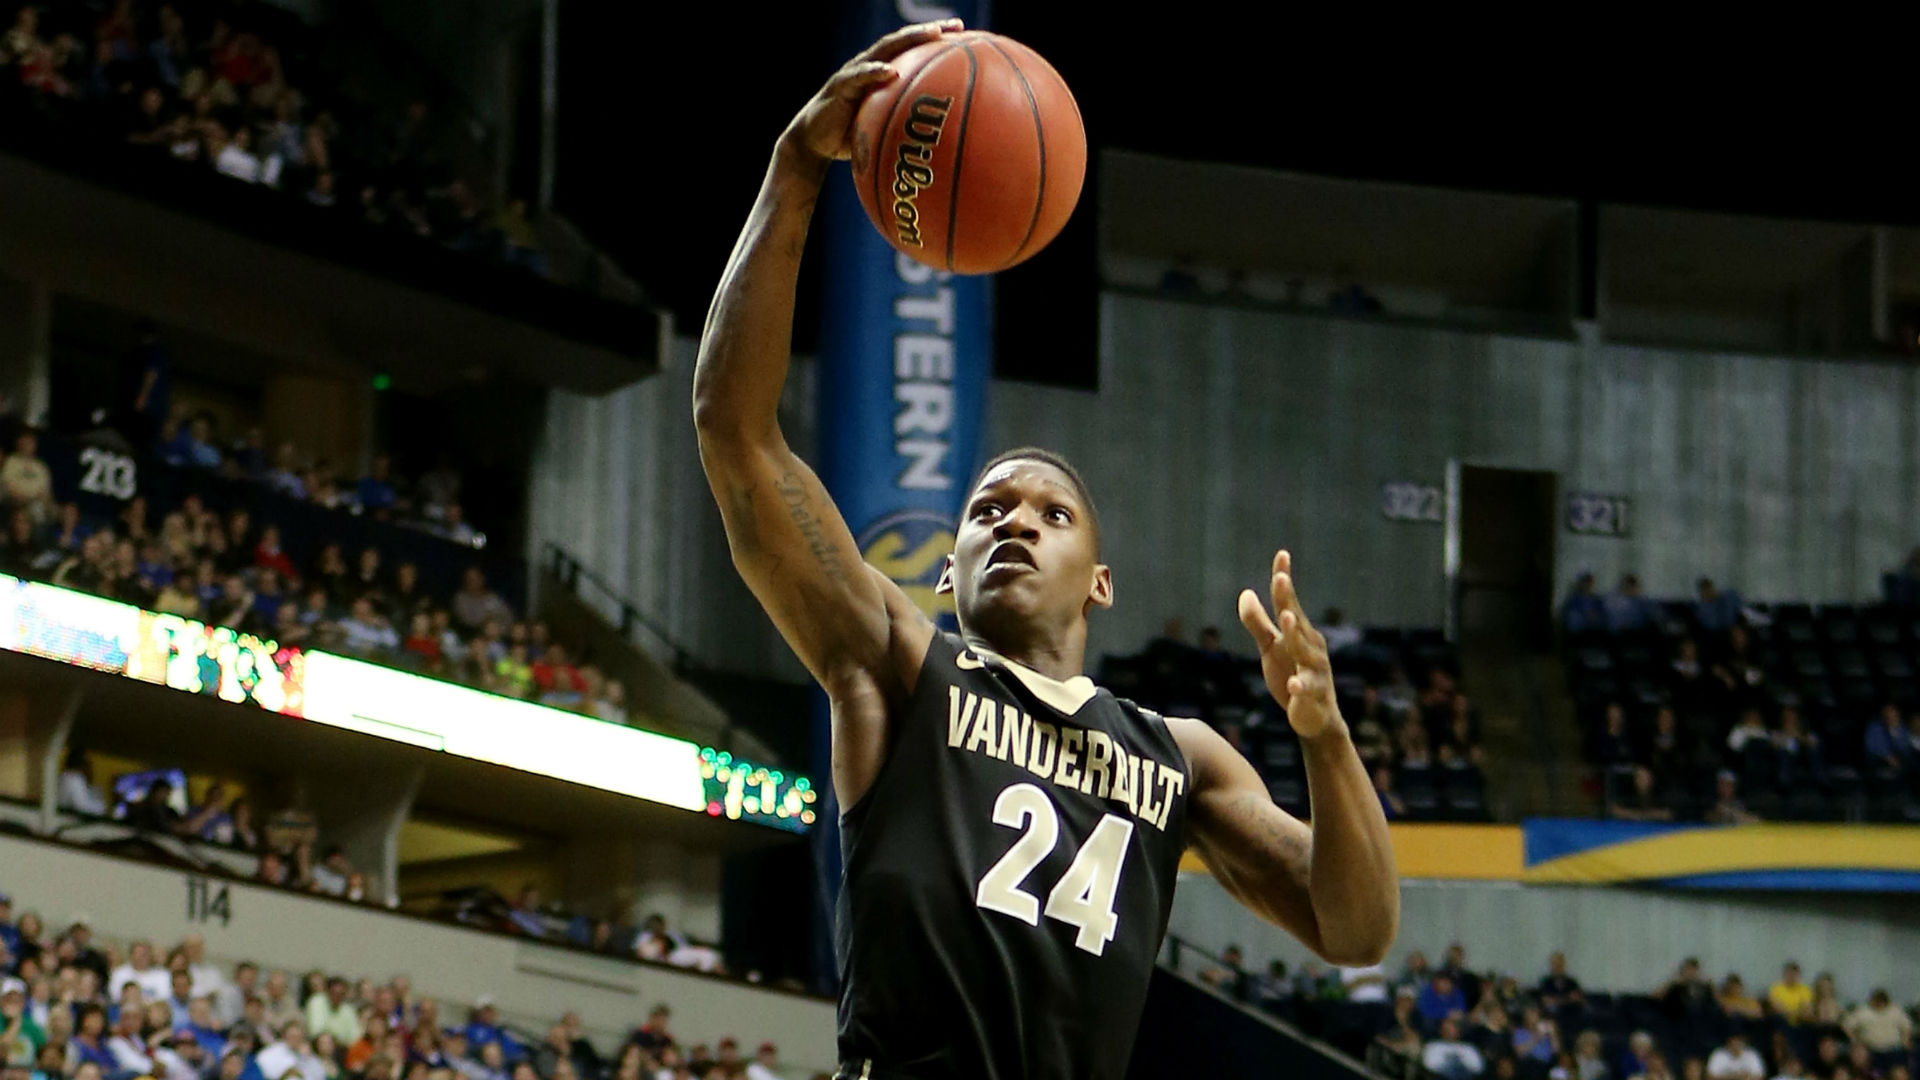 Ex-Vanderbilt basketball player Dai-Jon Parker dies in drowning accident